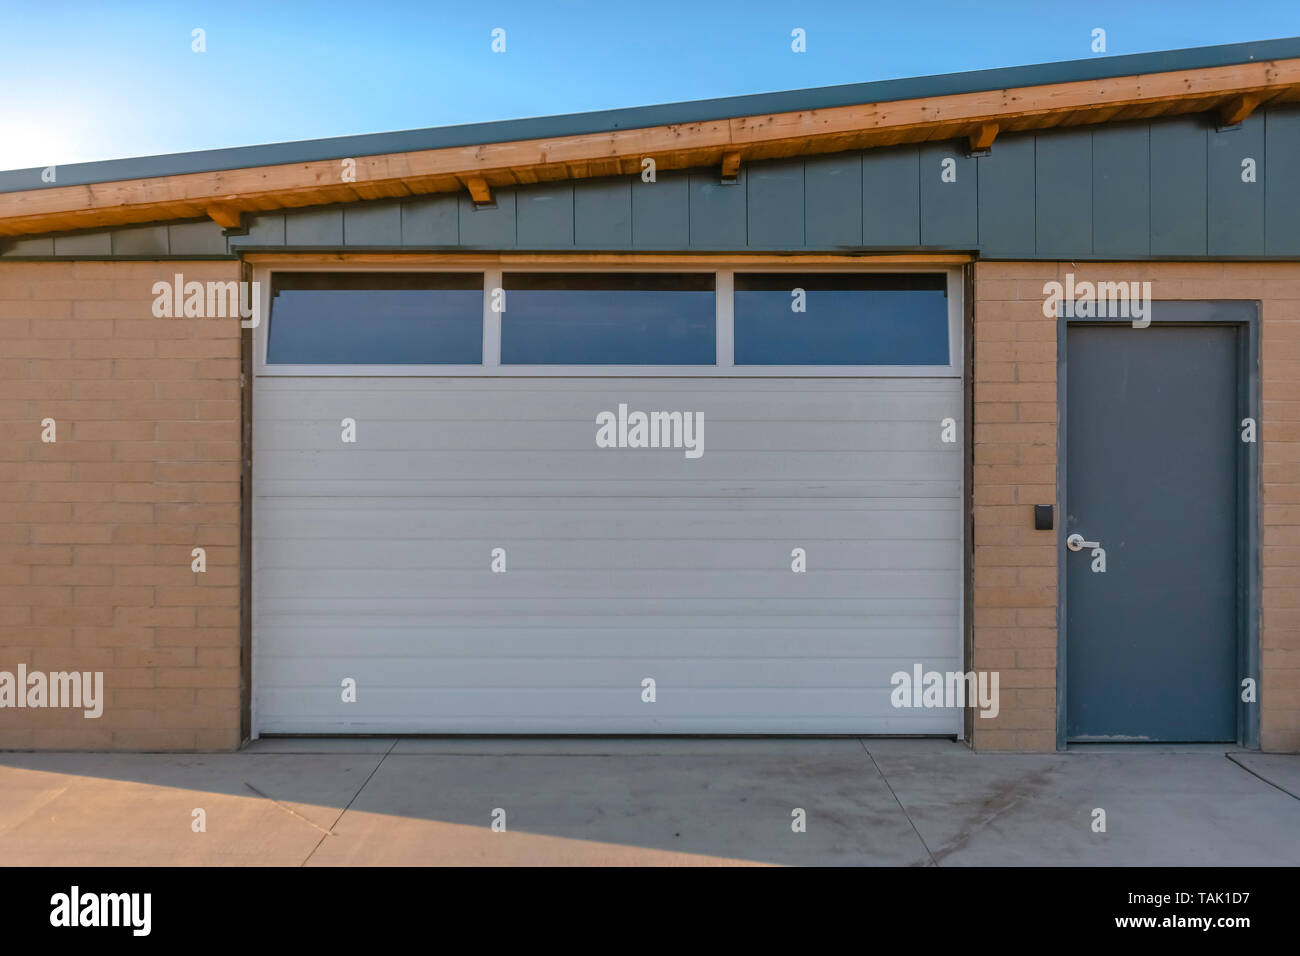 Exterior View Of A Building With Brick Wall Against Blue Sky On A Sunny Day The Building Has A Gray Door And White Garage Door With Small Windows Stock Photo Alamy